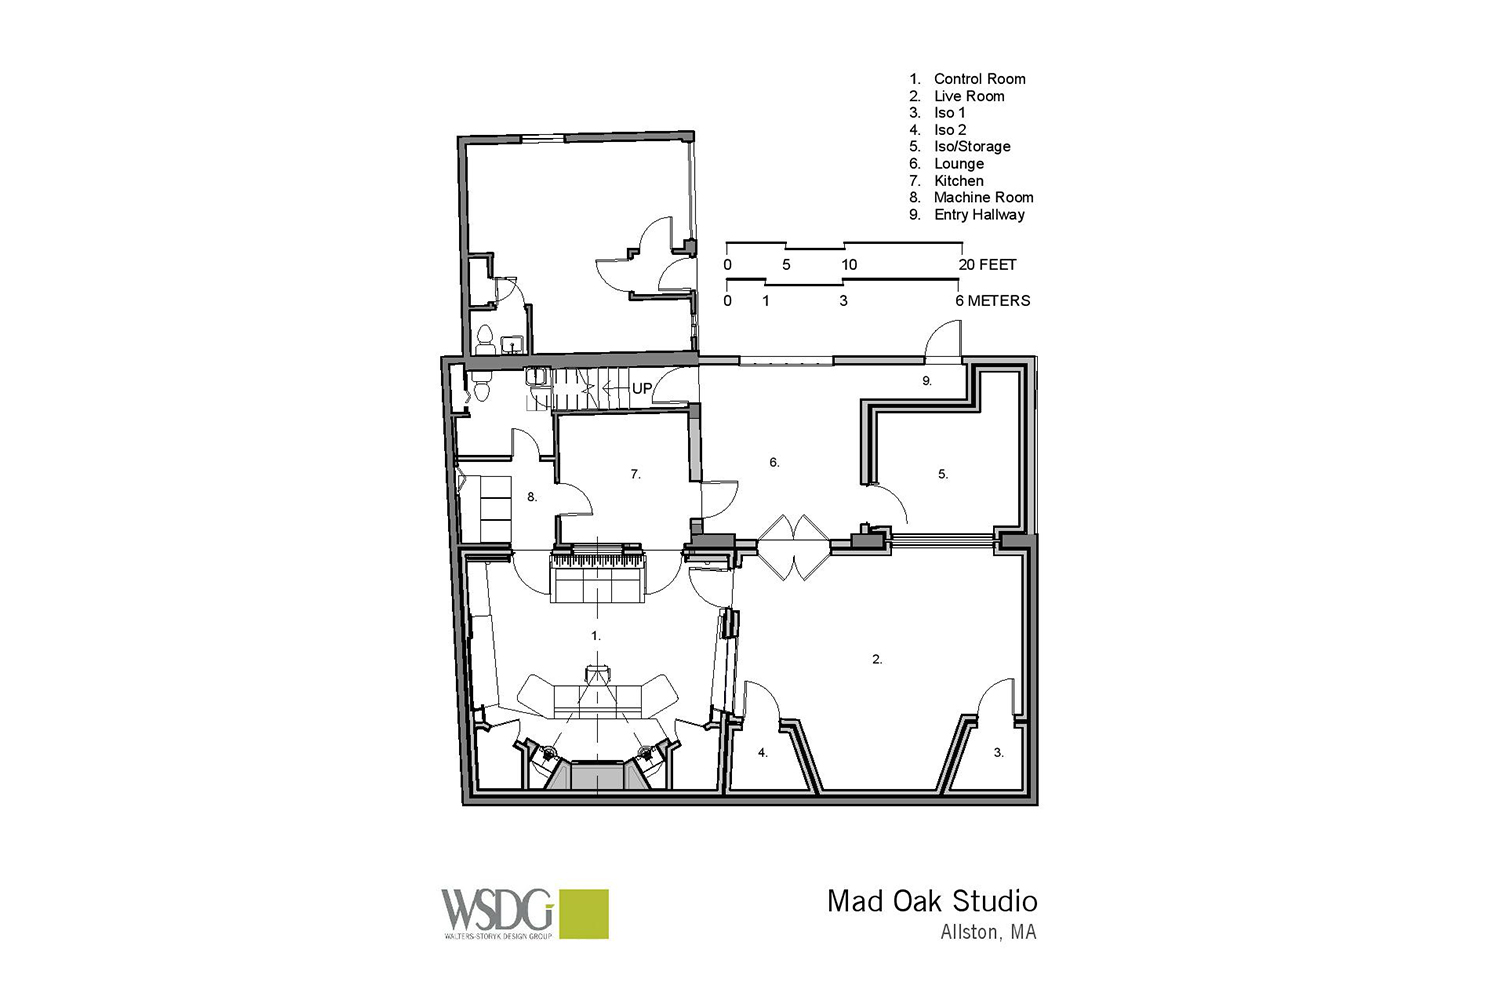 Gear guru studio owner PK Pandey Mad Oak Studios. Beautiful Control Room with Symphonic Acoustics custom speakers. WSDG was the only recording studio design firm considered for this project. Presentation drawing 1.